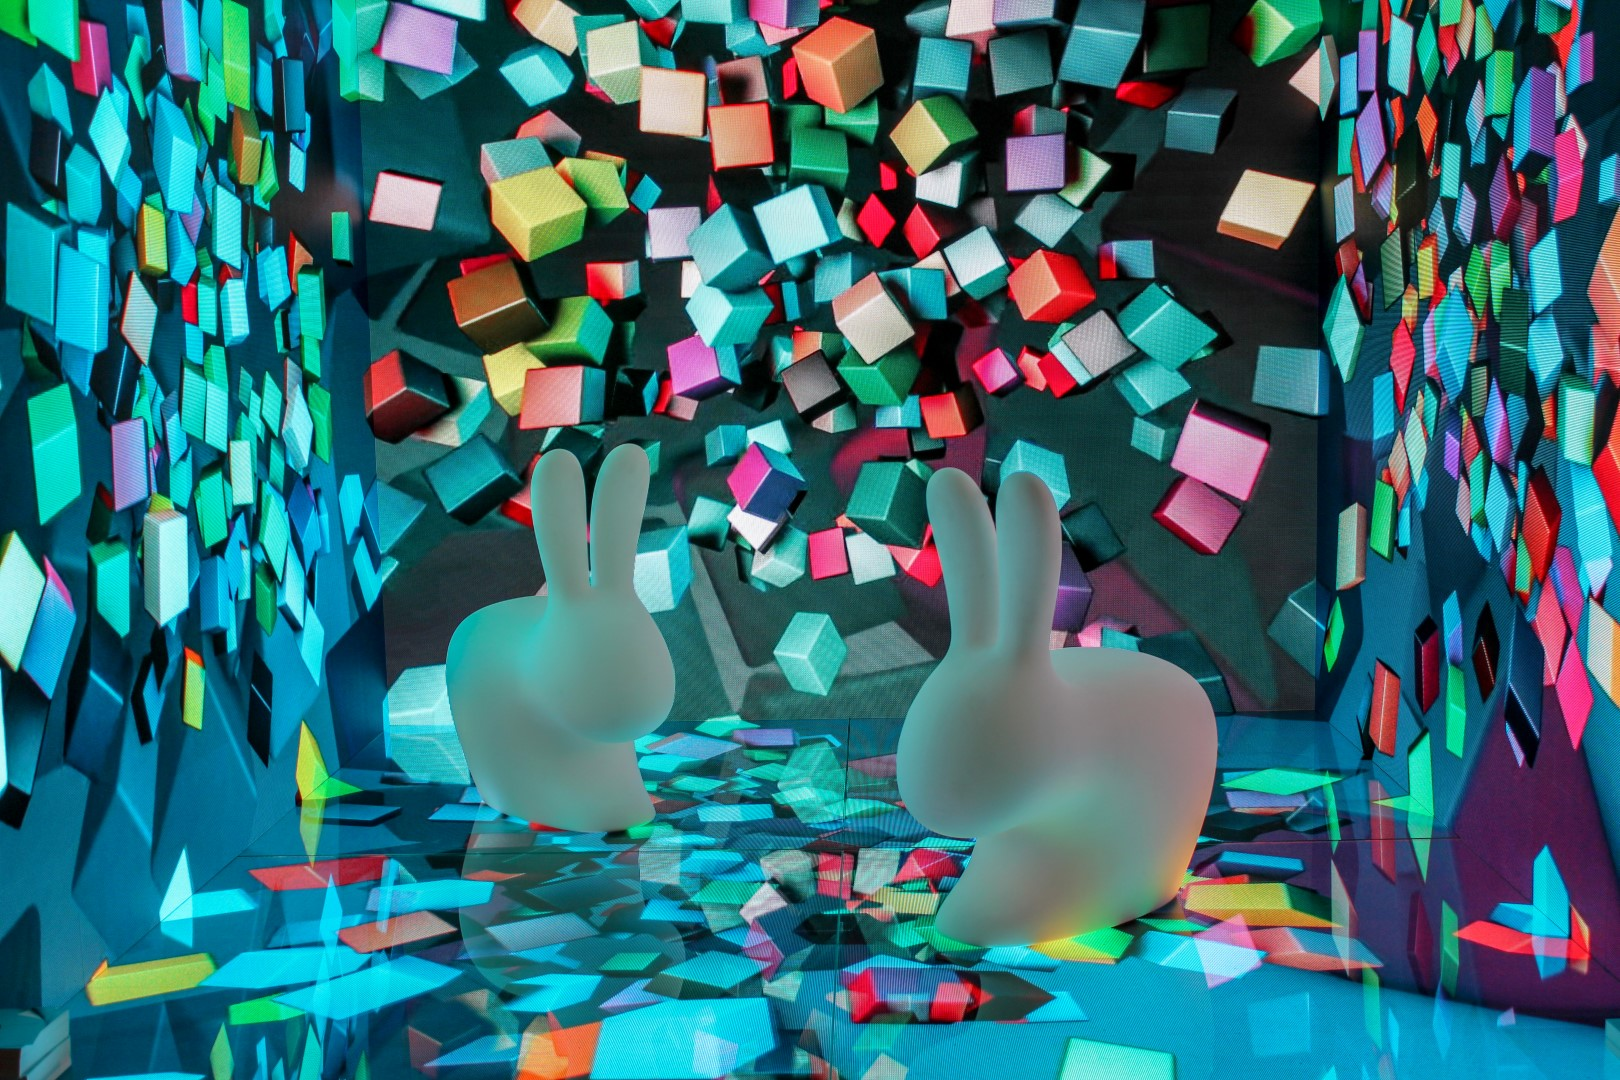 Incorporate 3D projection mapping into your booth design